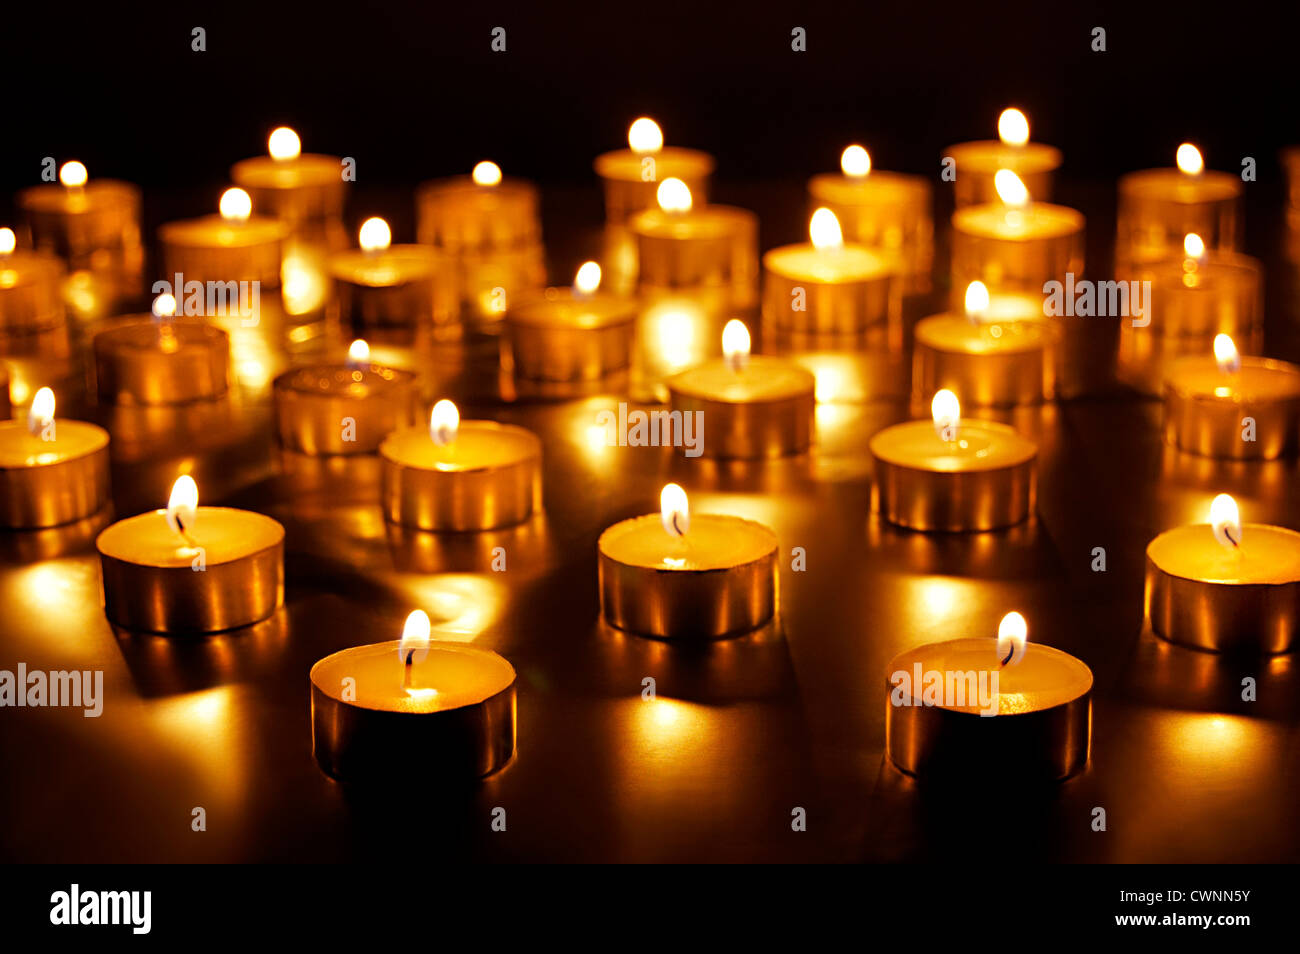 Candles are burning on Diwali Festival India - Stock Image